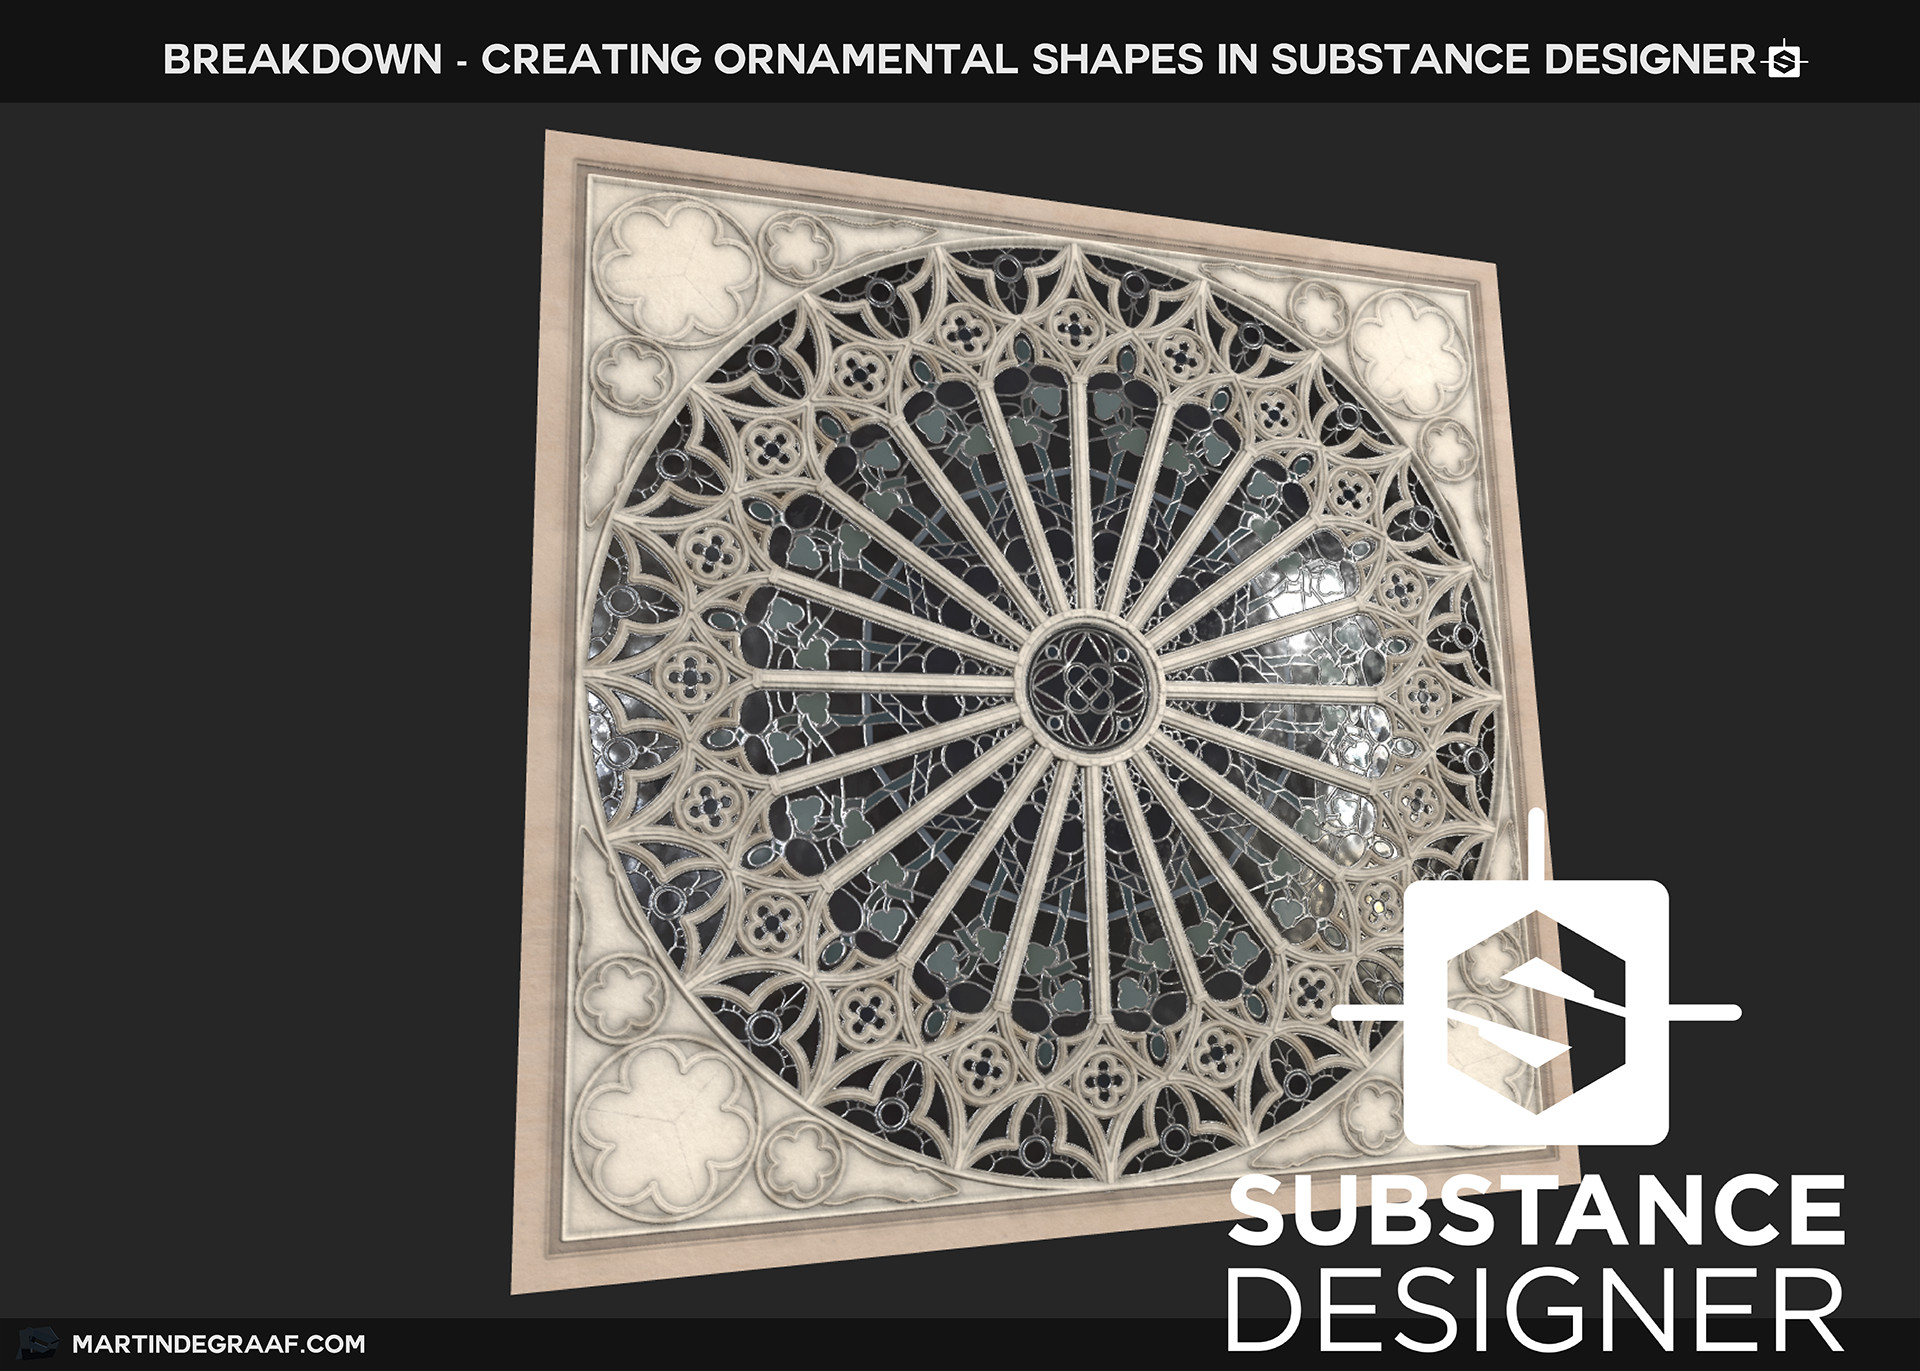 Martin de graaf martin de graaf creating ornamental shapes in substance designer frontpage